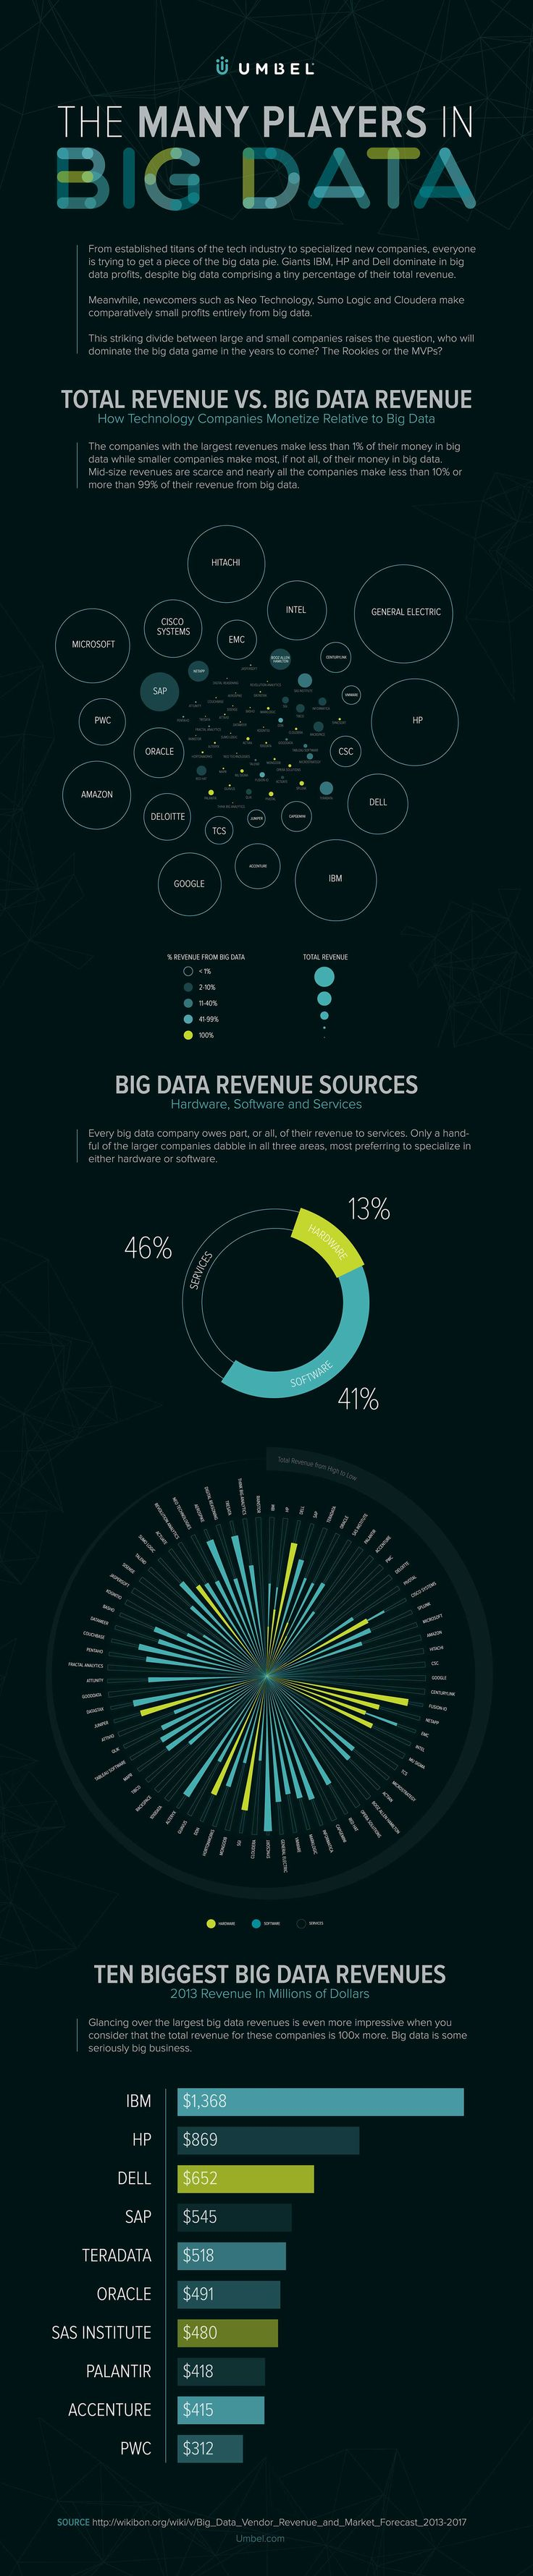 The Many Players in Big Data